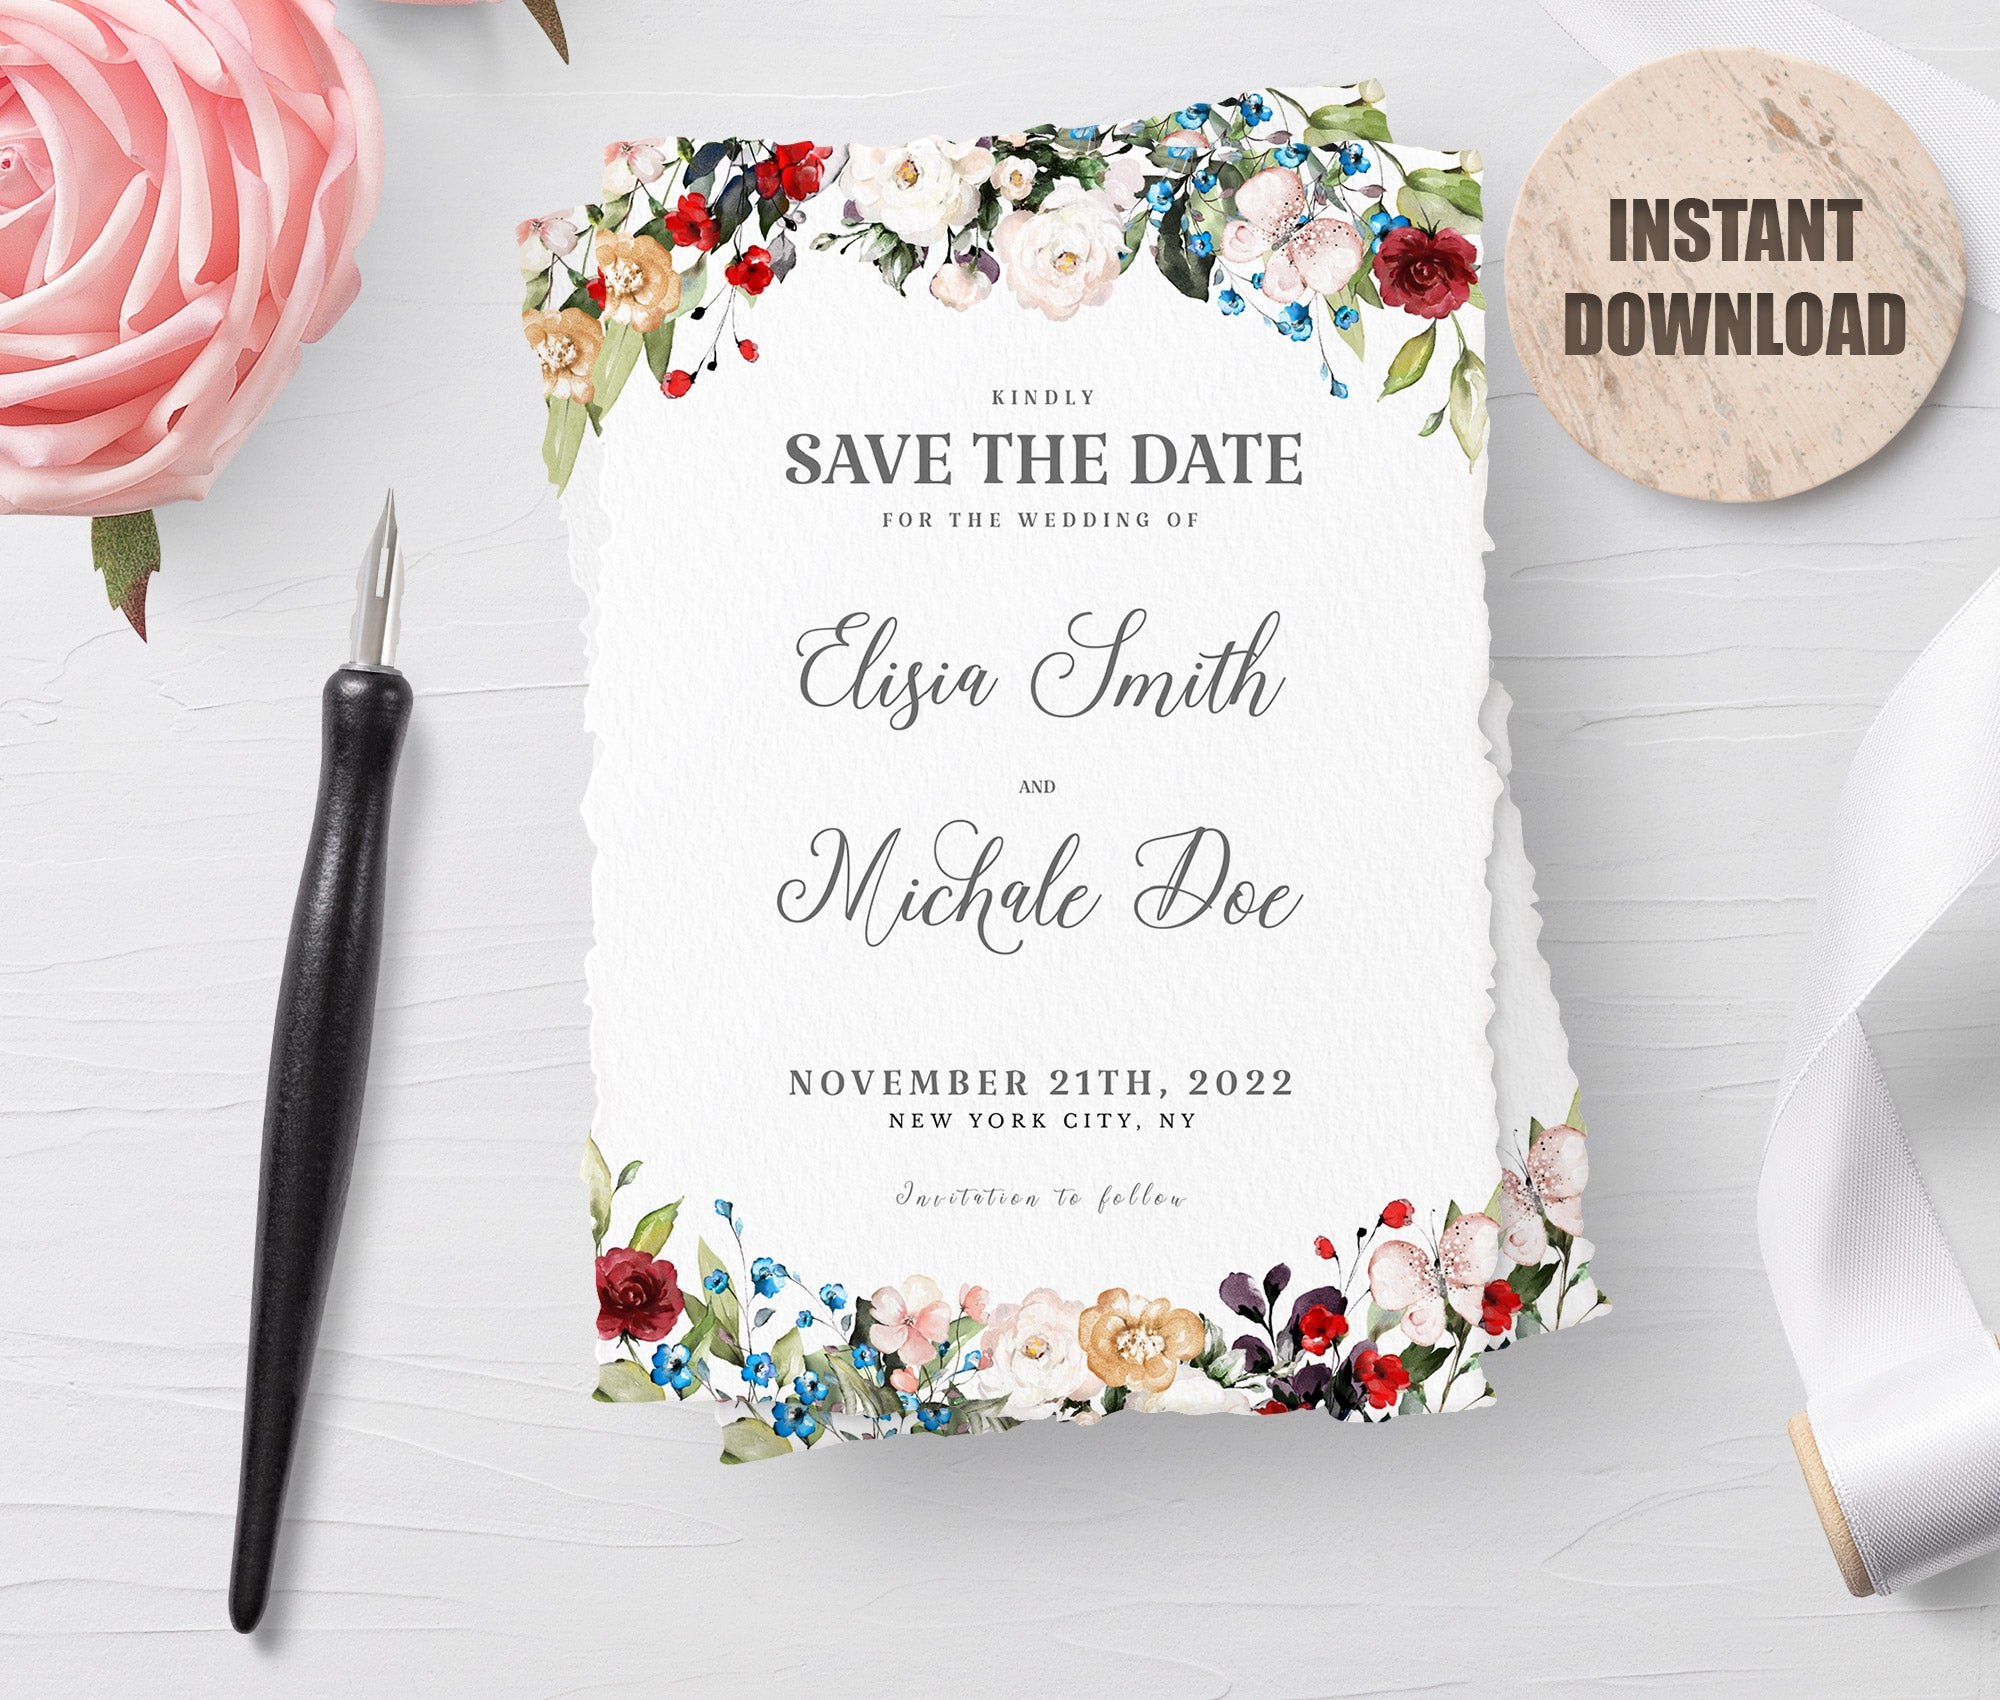 LOVAL Printable Save the Date Card set 4